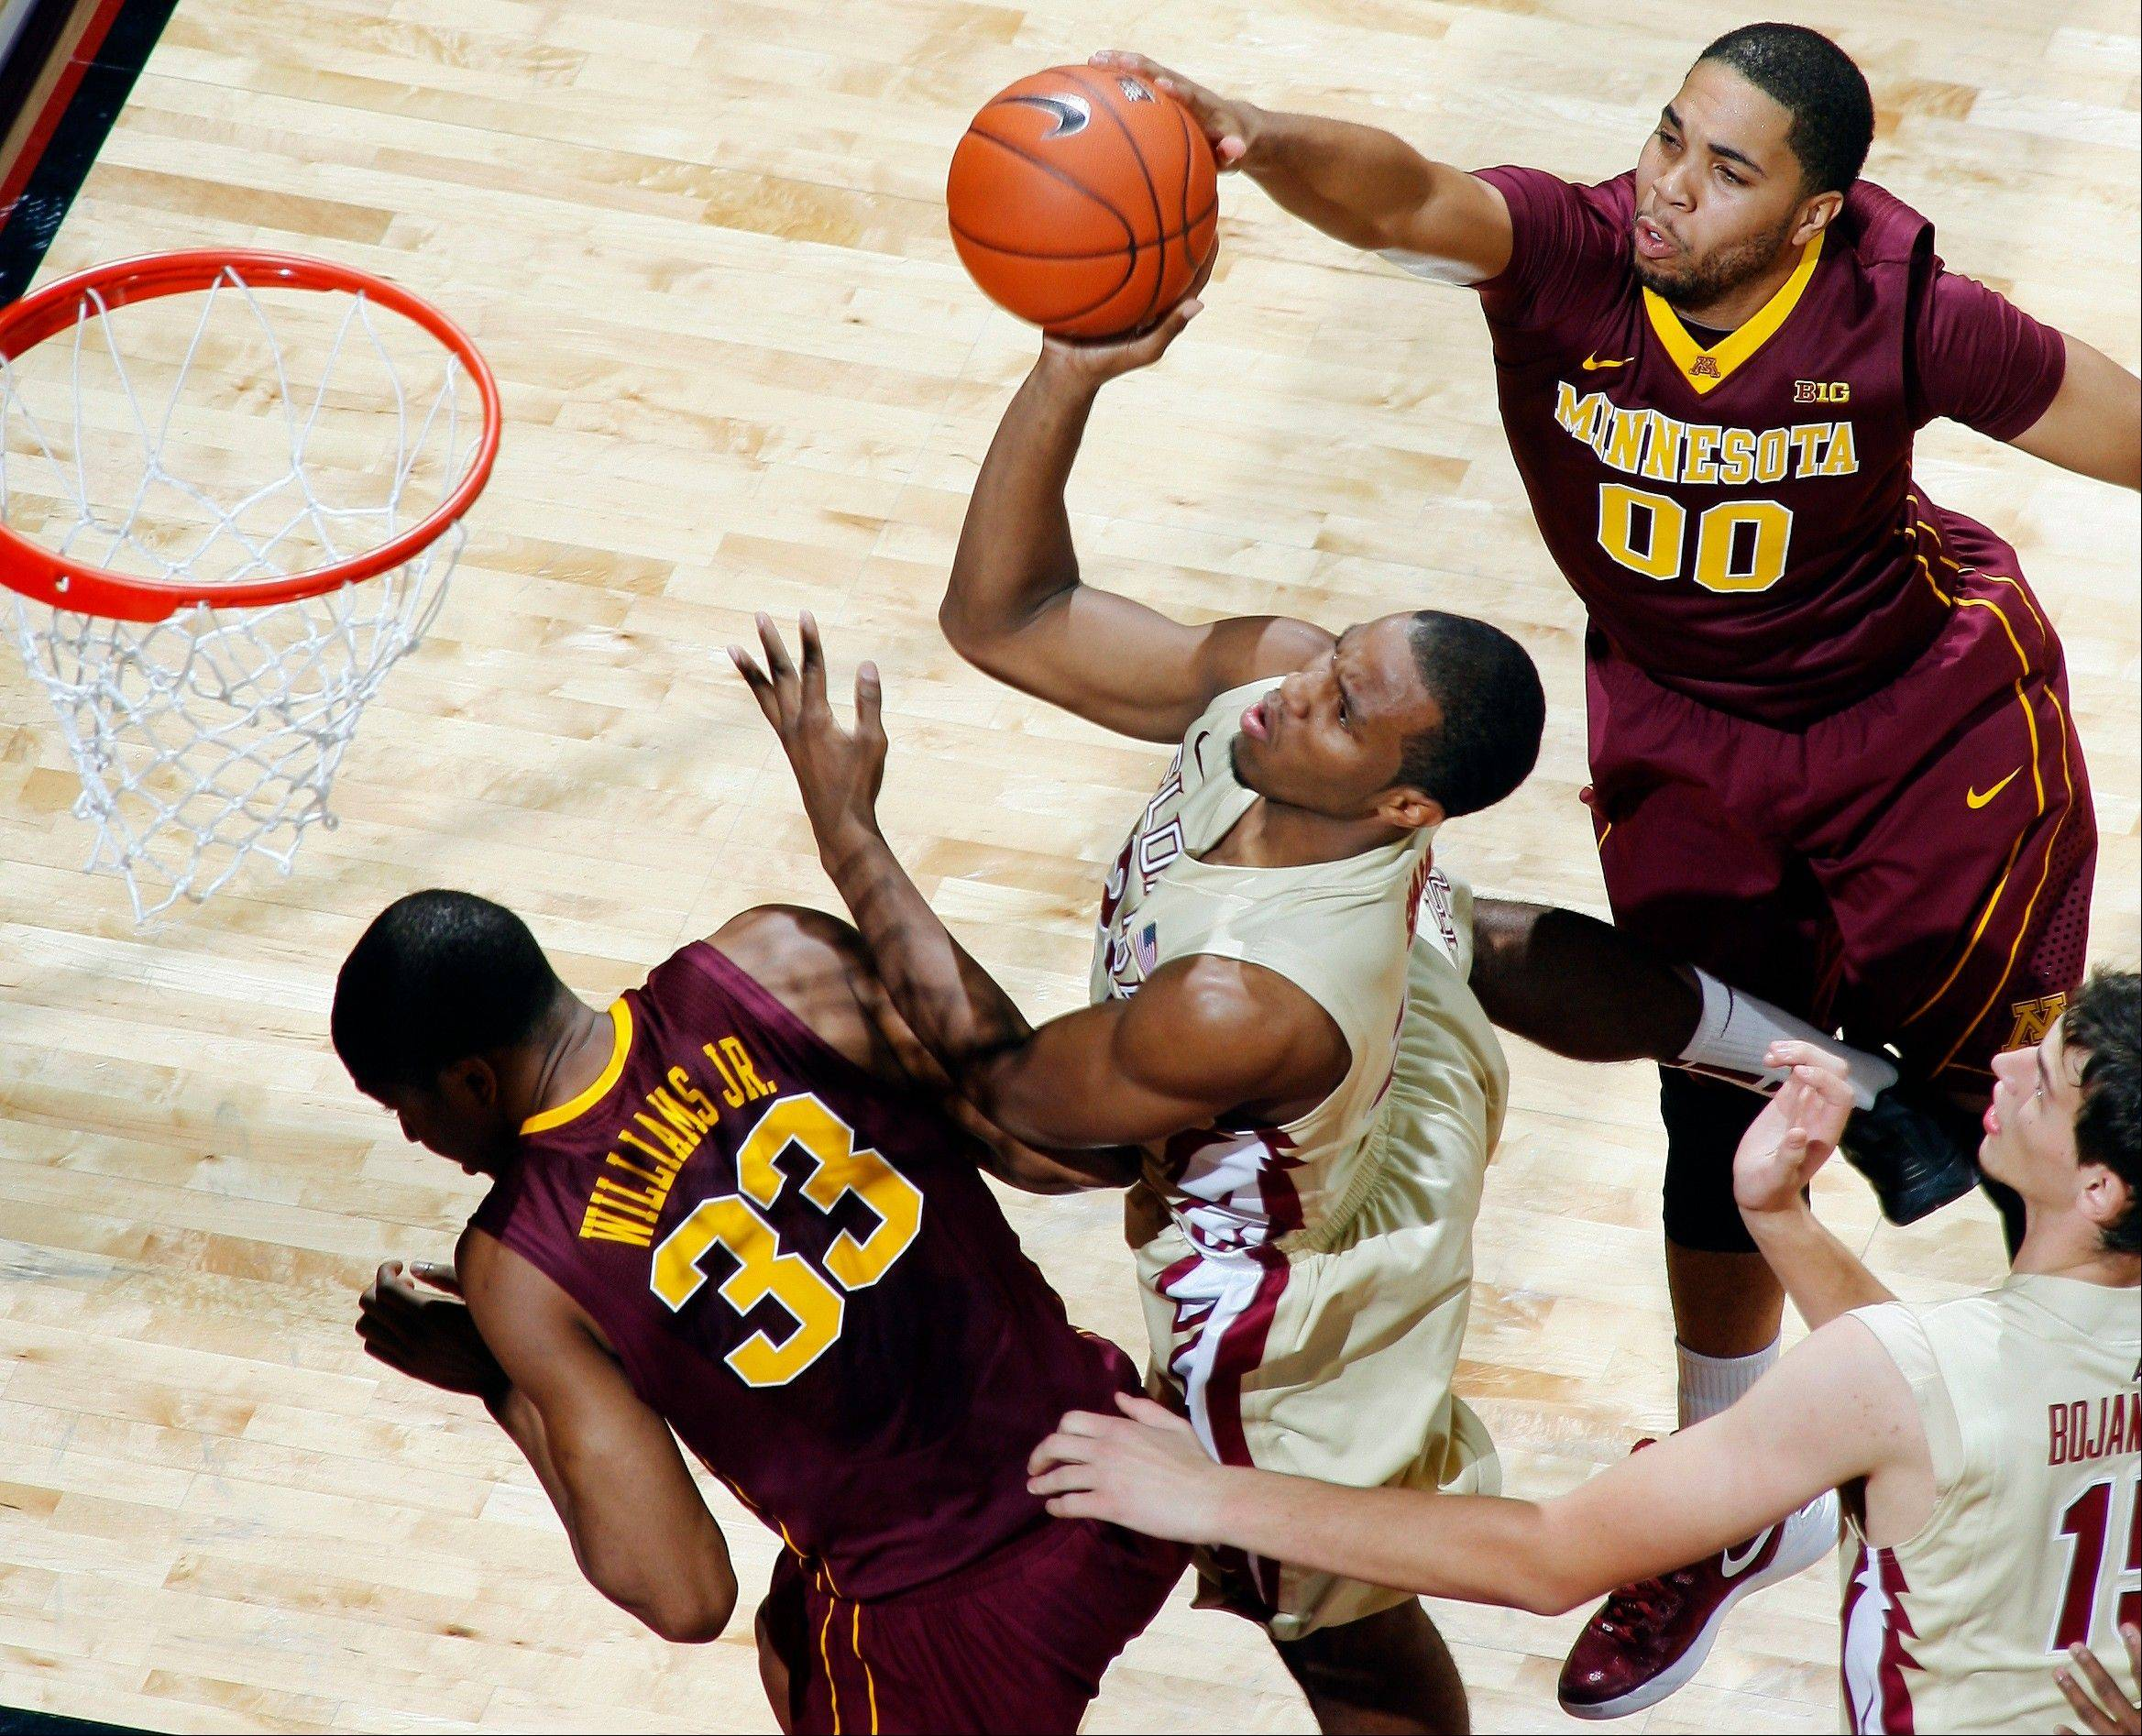 Minnesota forward Rodney Williams Jr., (33) fouls Florida State guard Michael Snaer (21) on a layup as Minnesota guard Julian Welch (00) tries to block the shot Tuesday during the first half in Tallahassee, Fla.